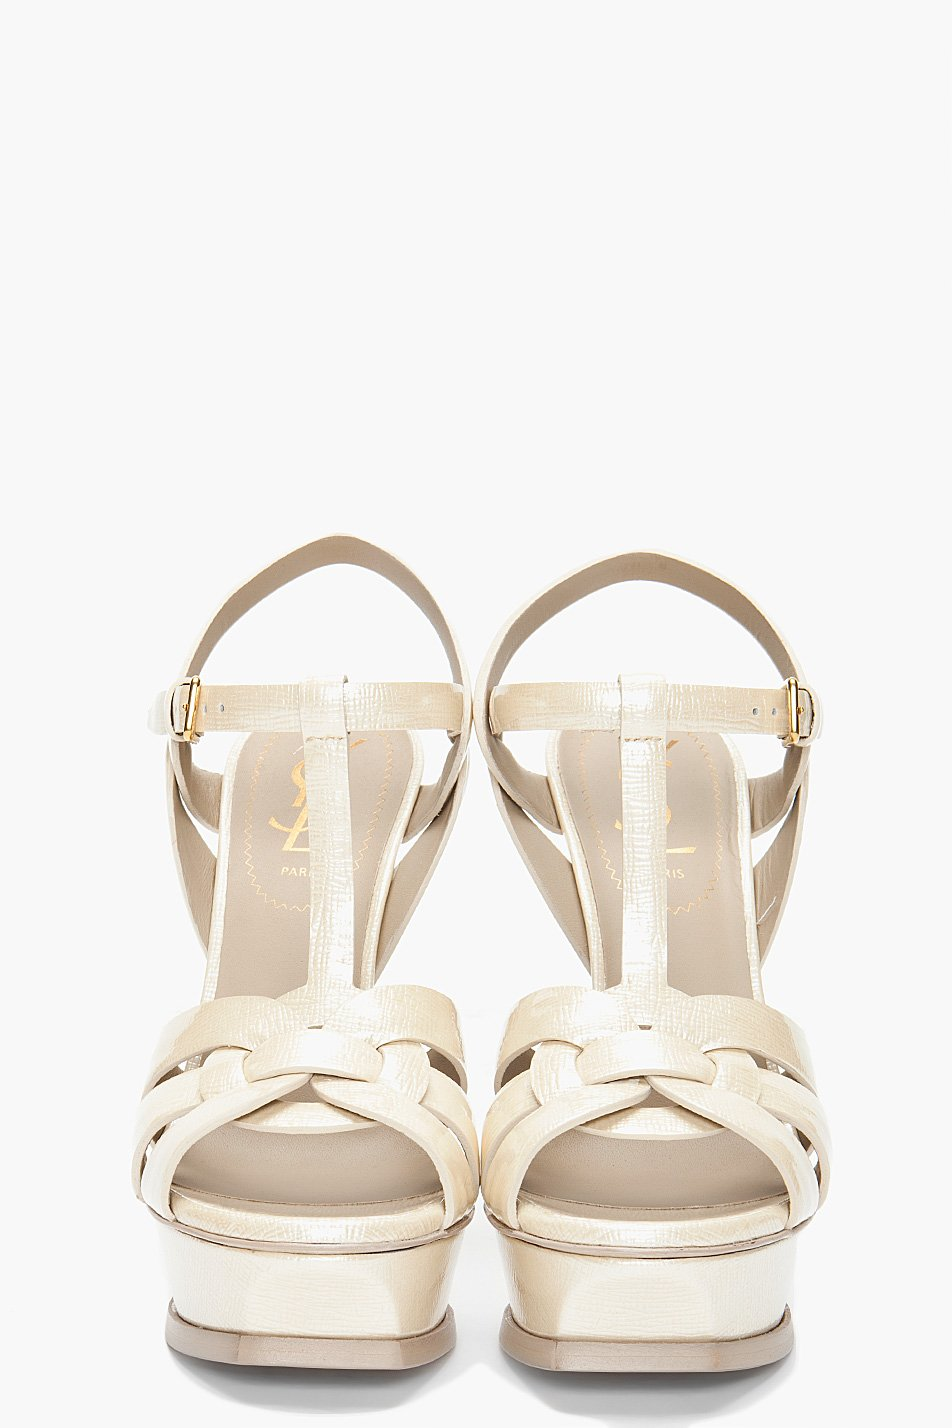 Beau Lyst   Saint Laurent Woven Tribute Heels In White